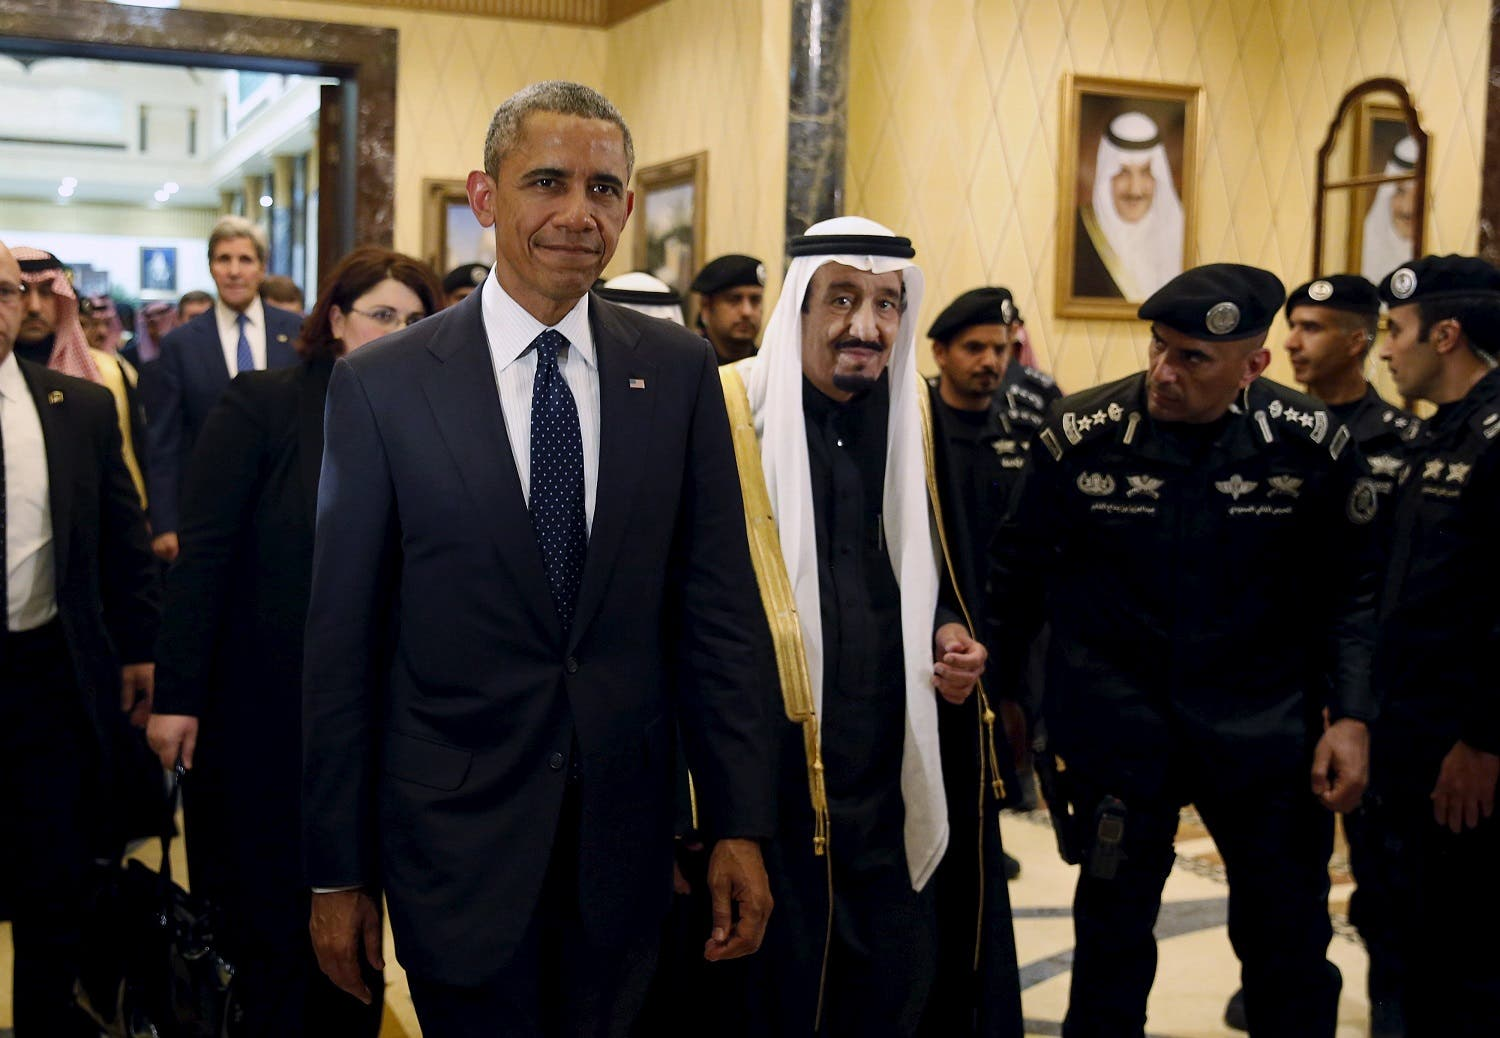 U.S. President Barack Obama (L) walks with Saudi Arabia's King Salman to a meeting at Erga Palace in Riyadh, Saudi Arabia, January 27, 2015. To match Special Report SAUDI-MILITARY/ REUTERS